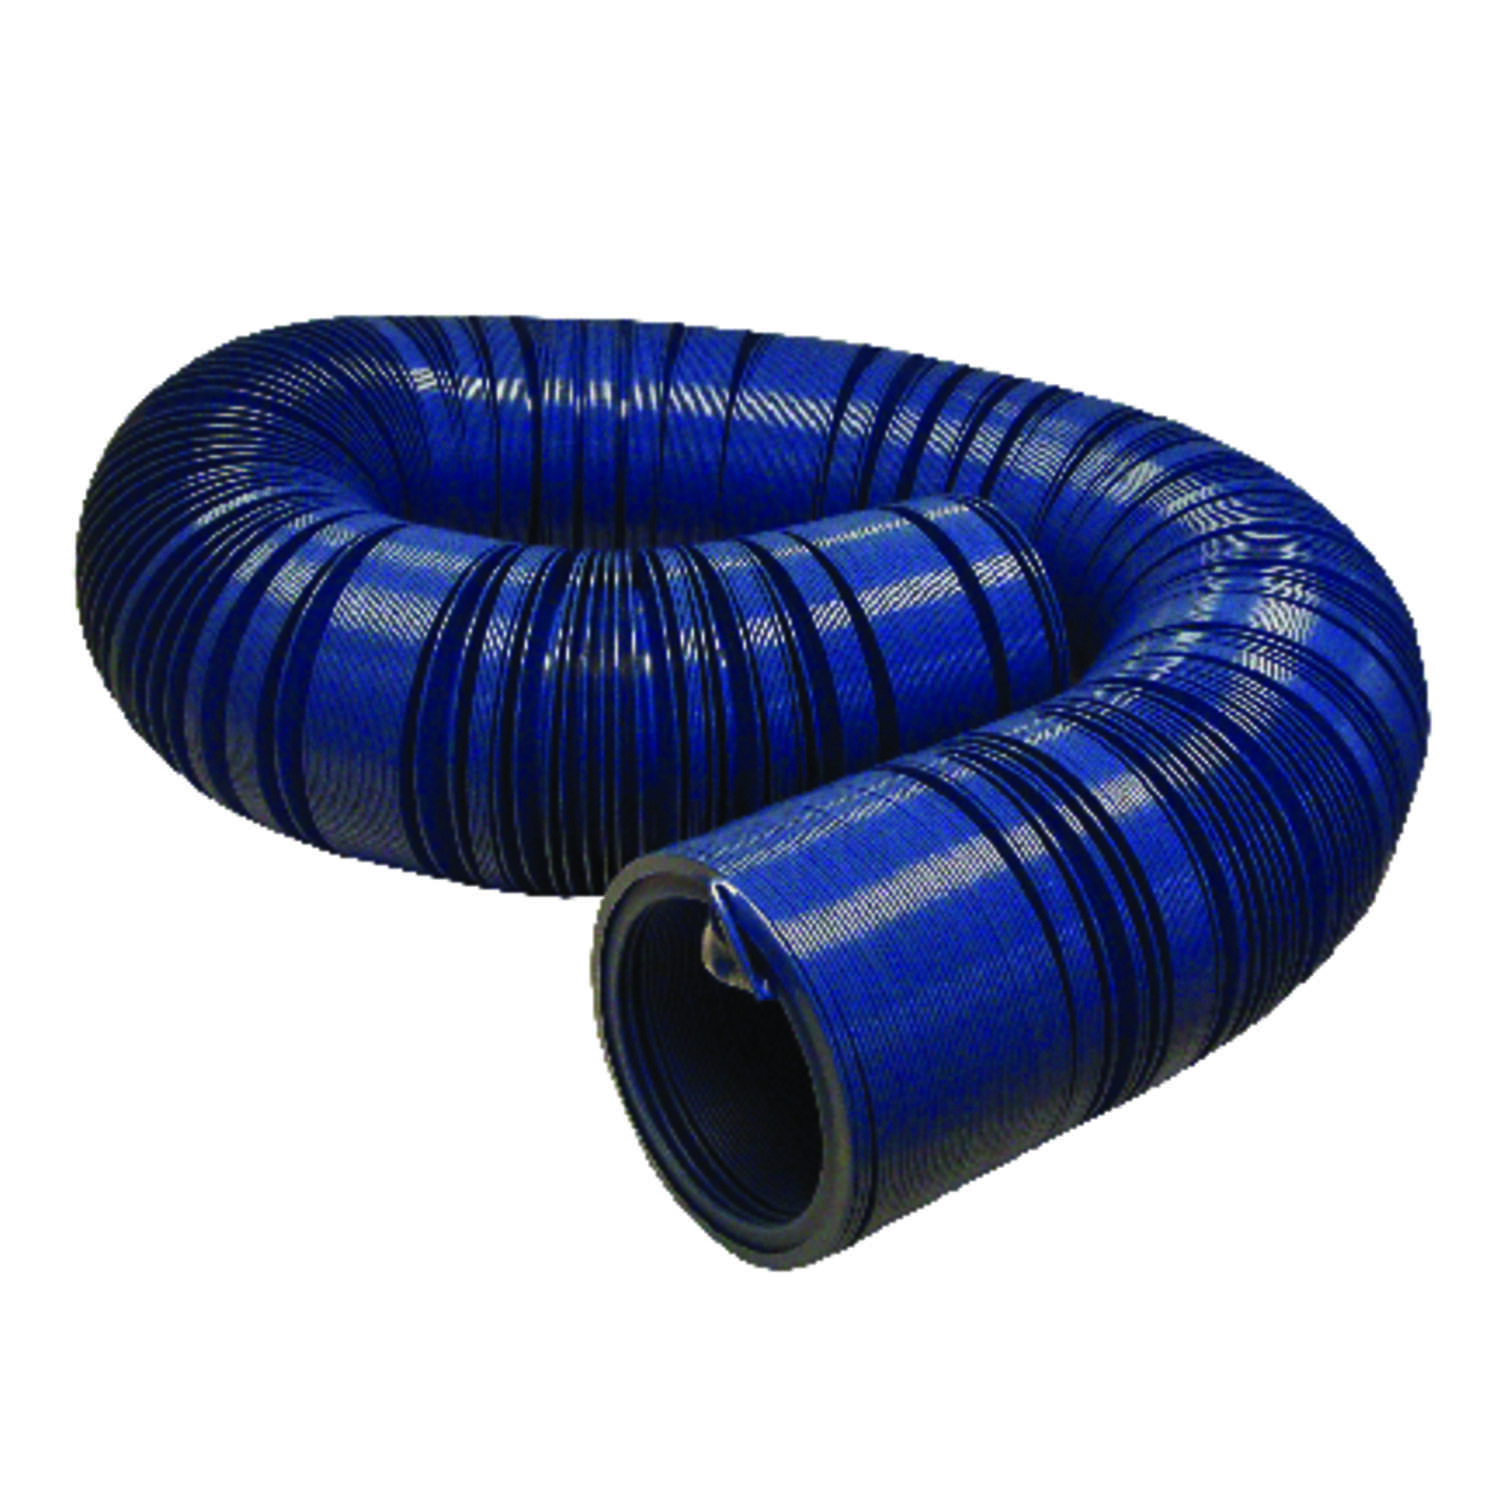 US Hardware Sewer Hose 1 pk